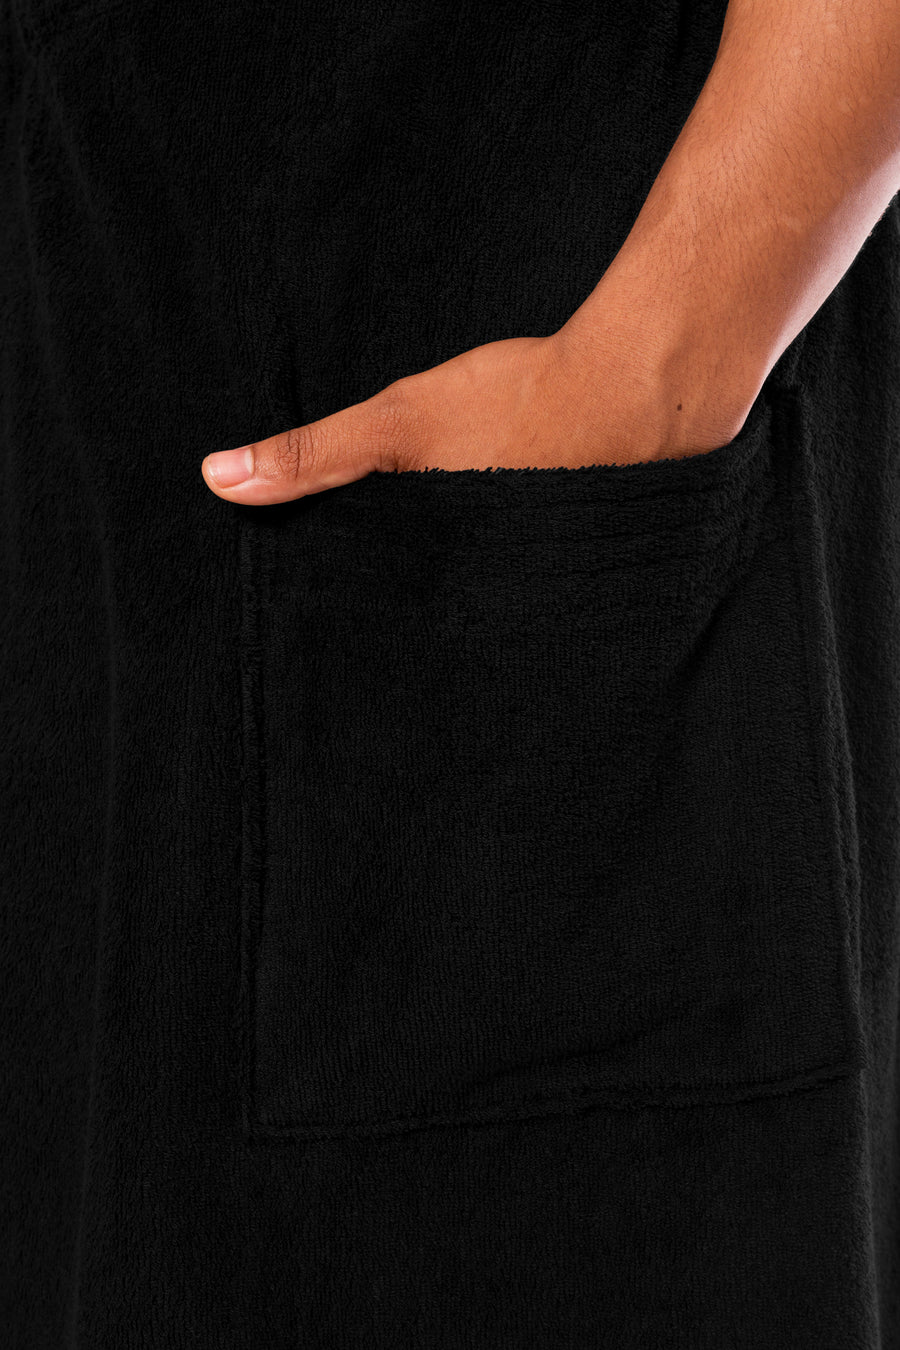 Forestcalm - Men's Bamboo Viscose Spa Wrap - testing23451234 - Bathrobes